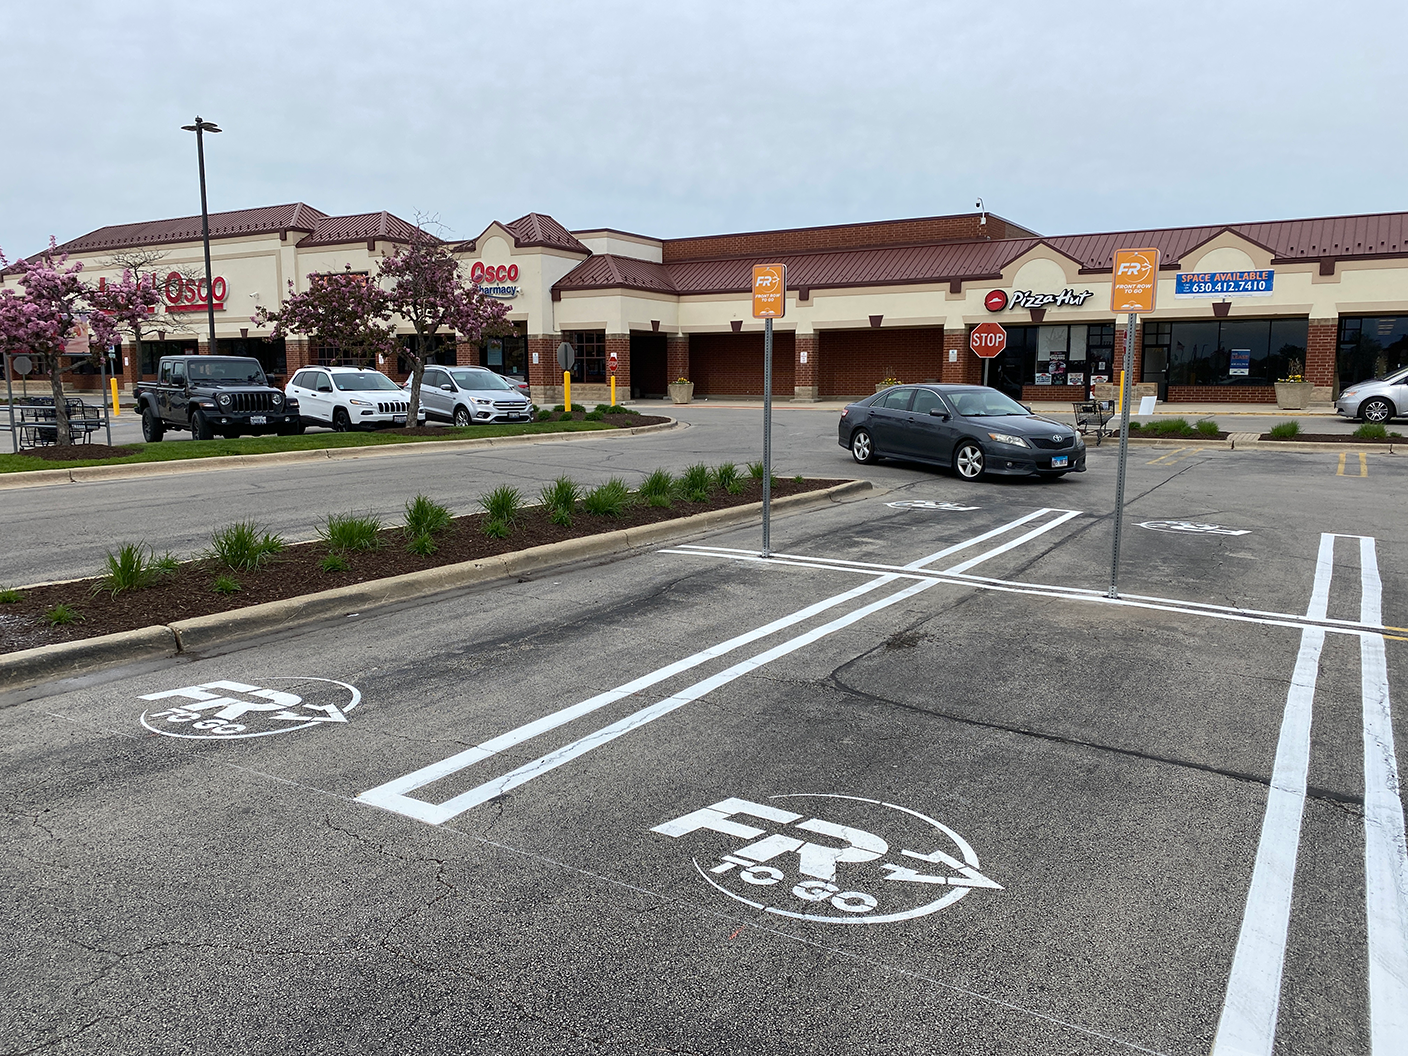 fresh striping for curbside parking